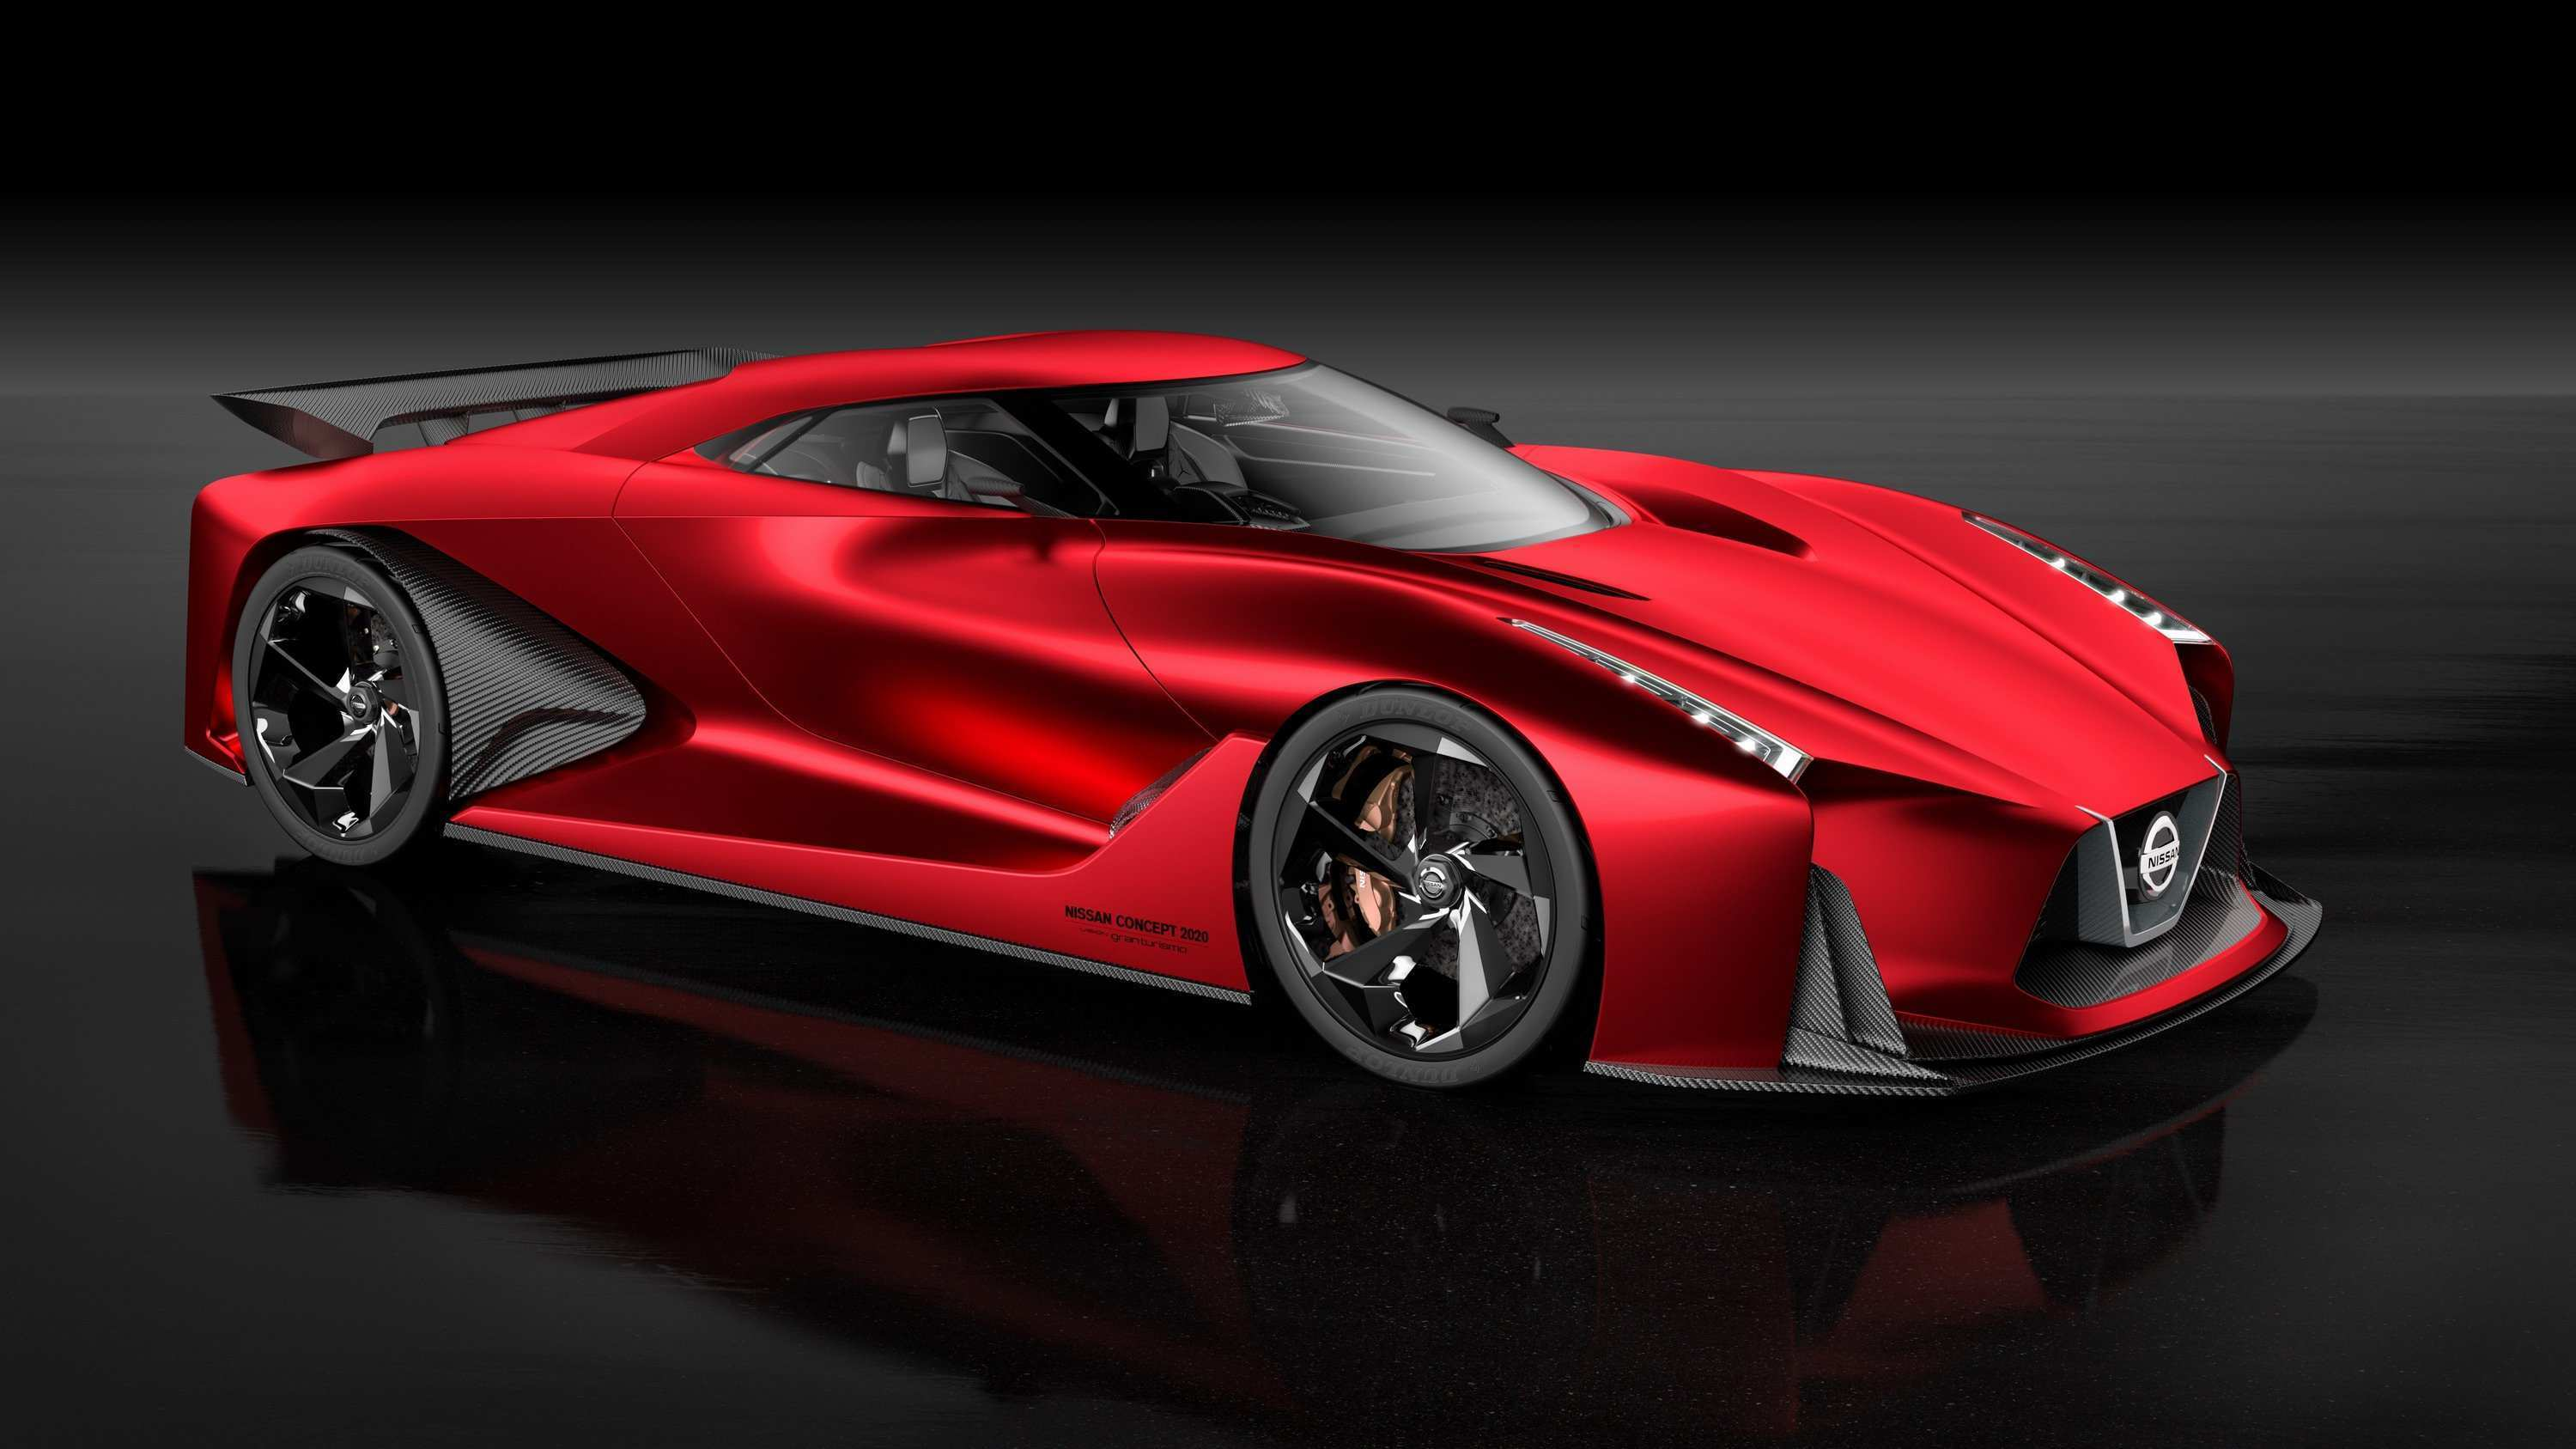 41 Gallery of New Gtr Nissan 2020 New Concept by New Gtr Nissan 2020